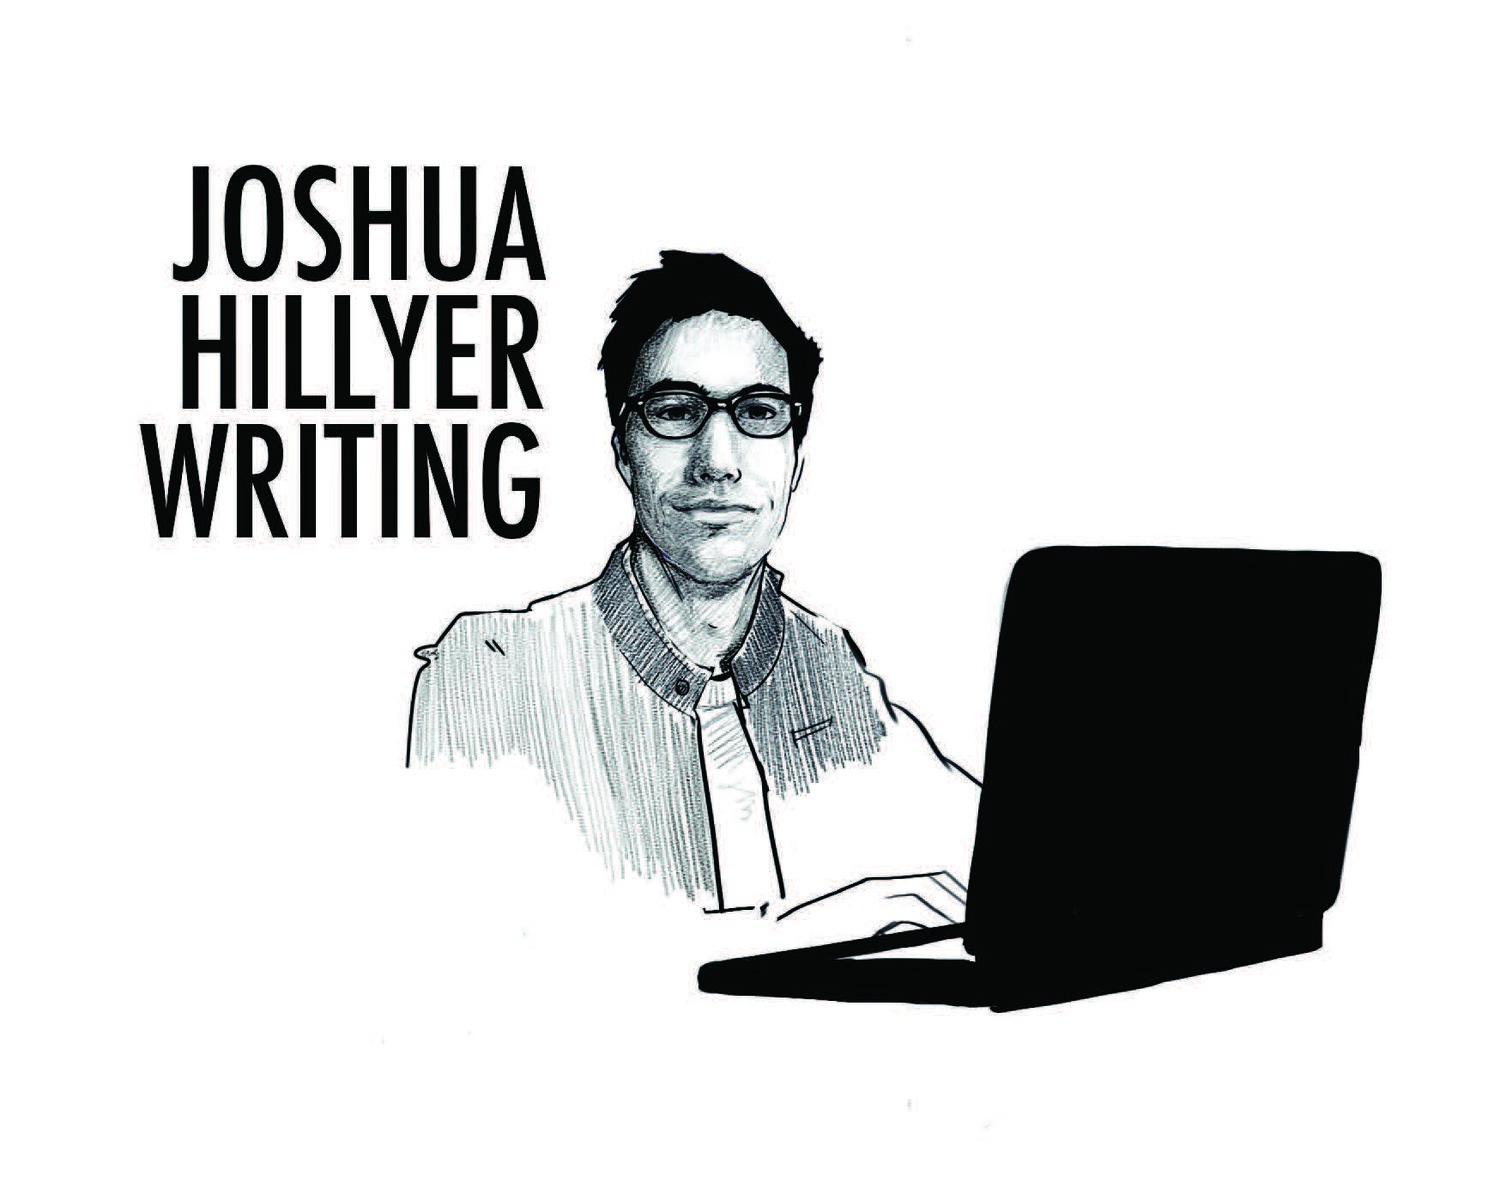 Joshua Hillyer Writing